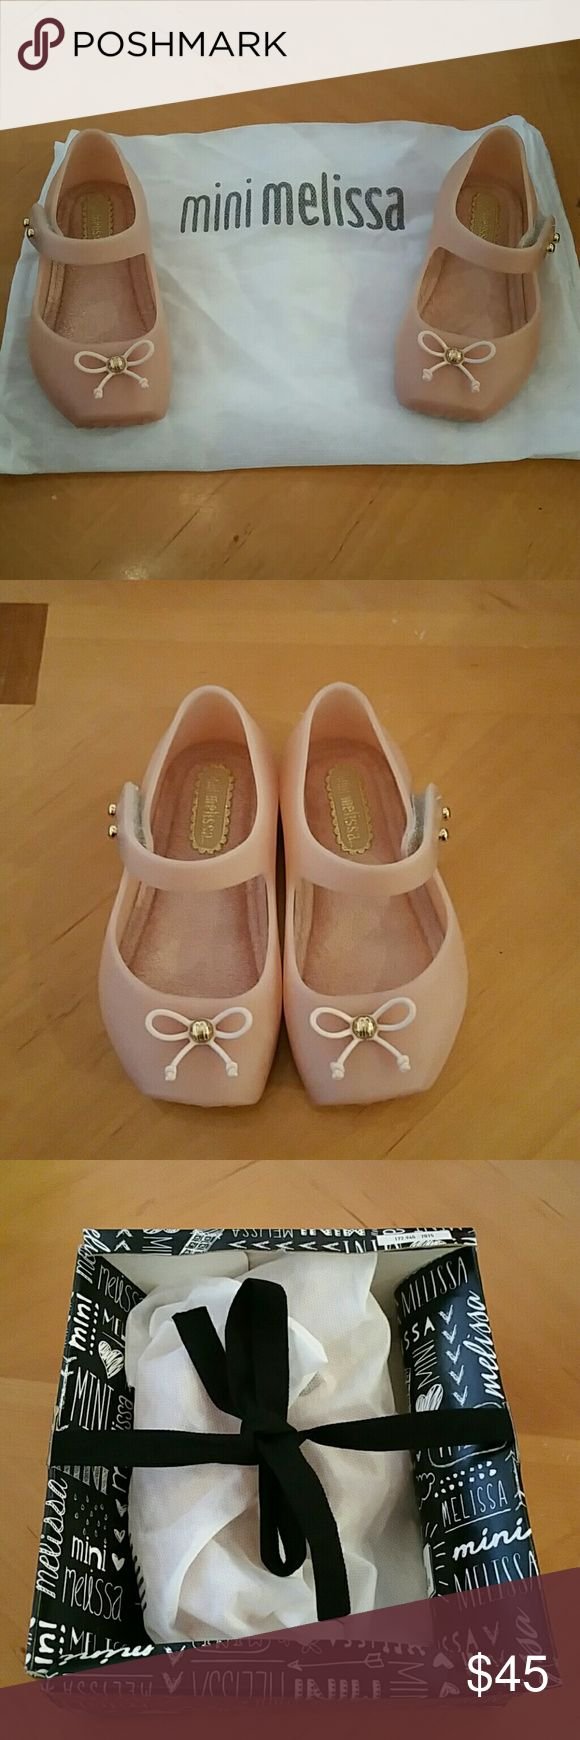 MINI MELISSA SHOES. NWT MINI MELISSA shoes. NWT color is light pink peachy color. Very pretty. Mini Melissa Shoes Baby & Walker